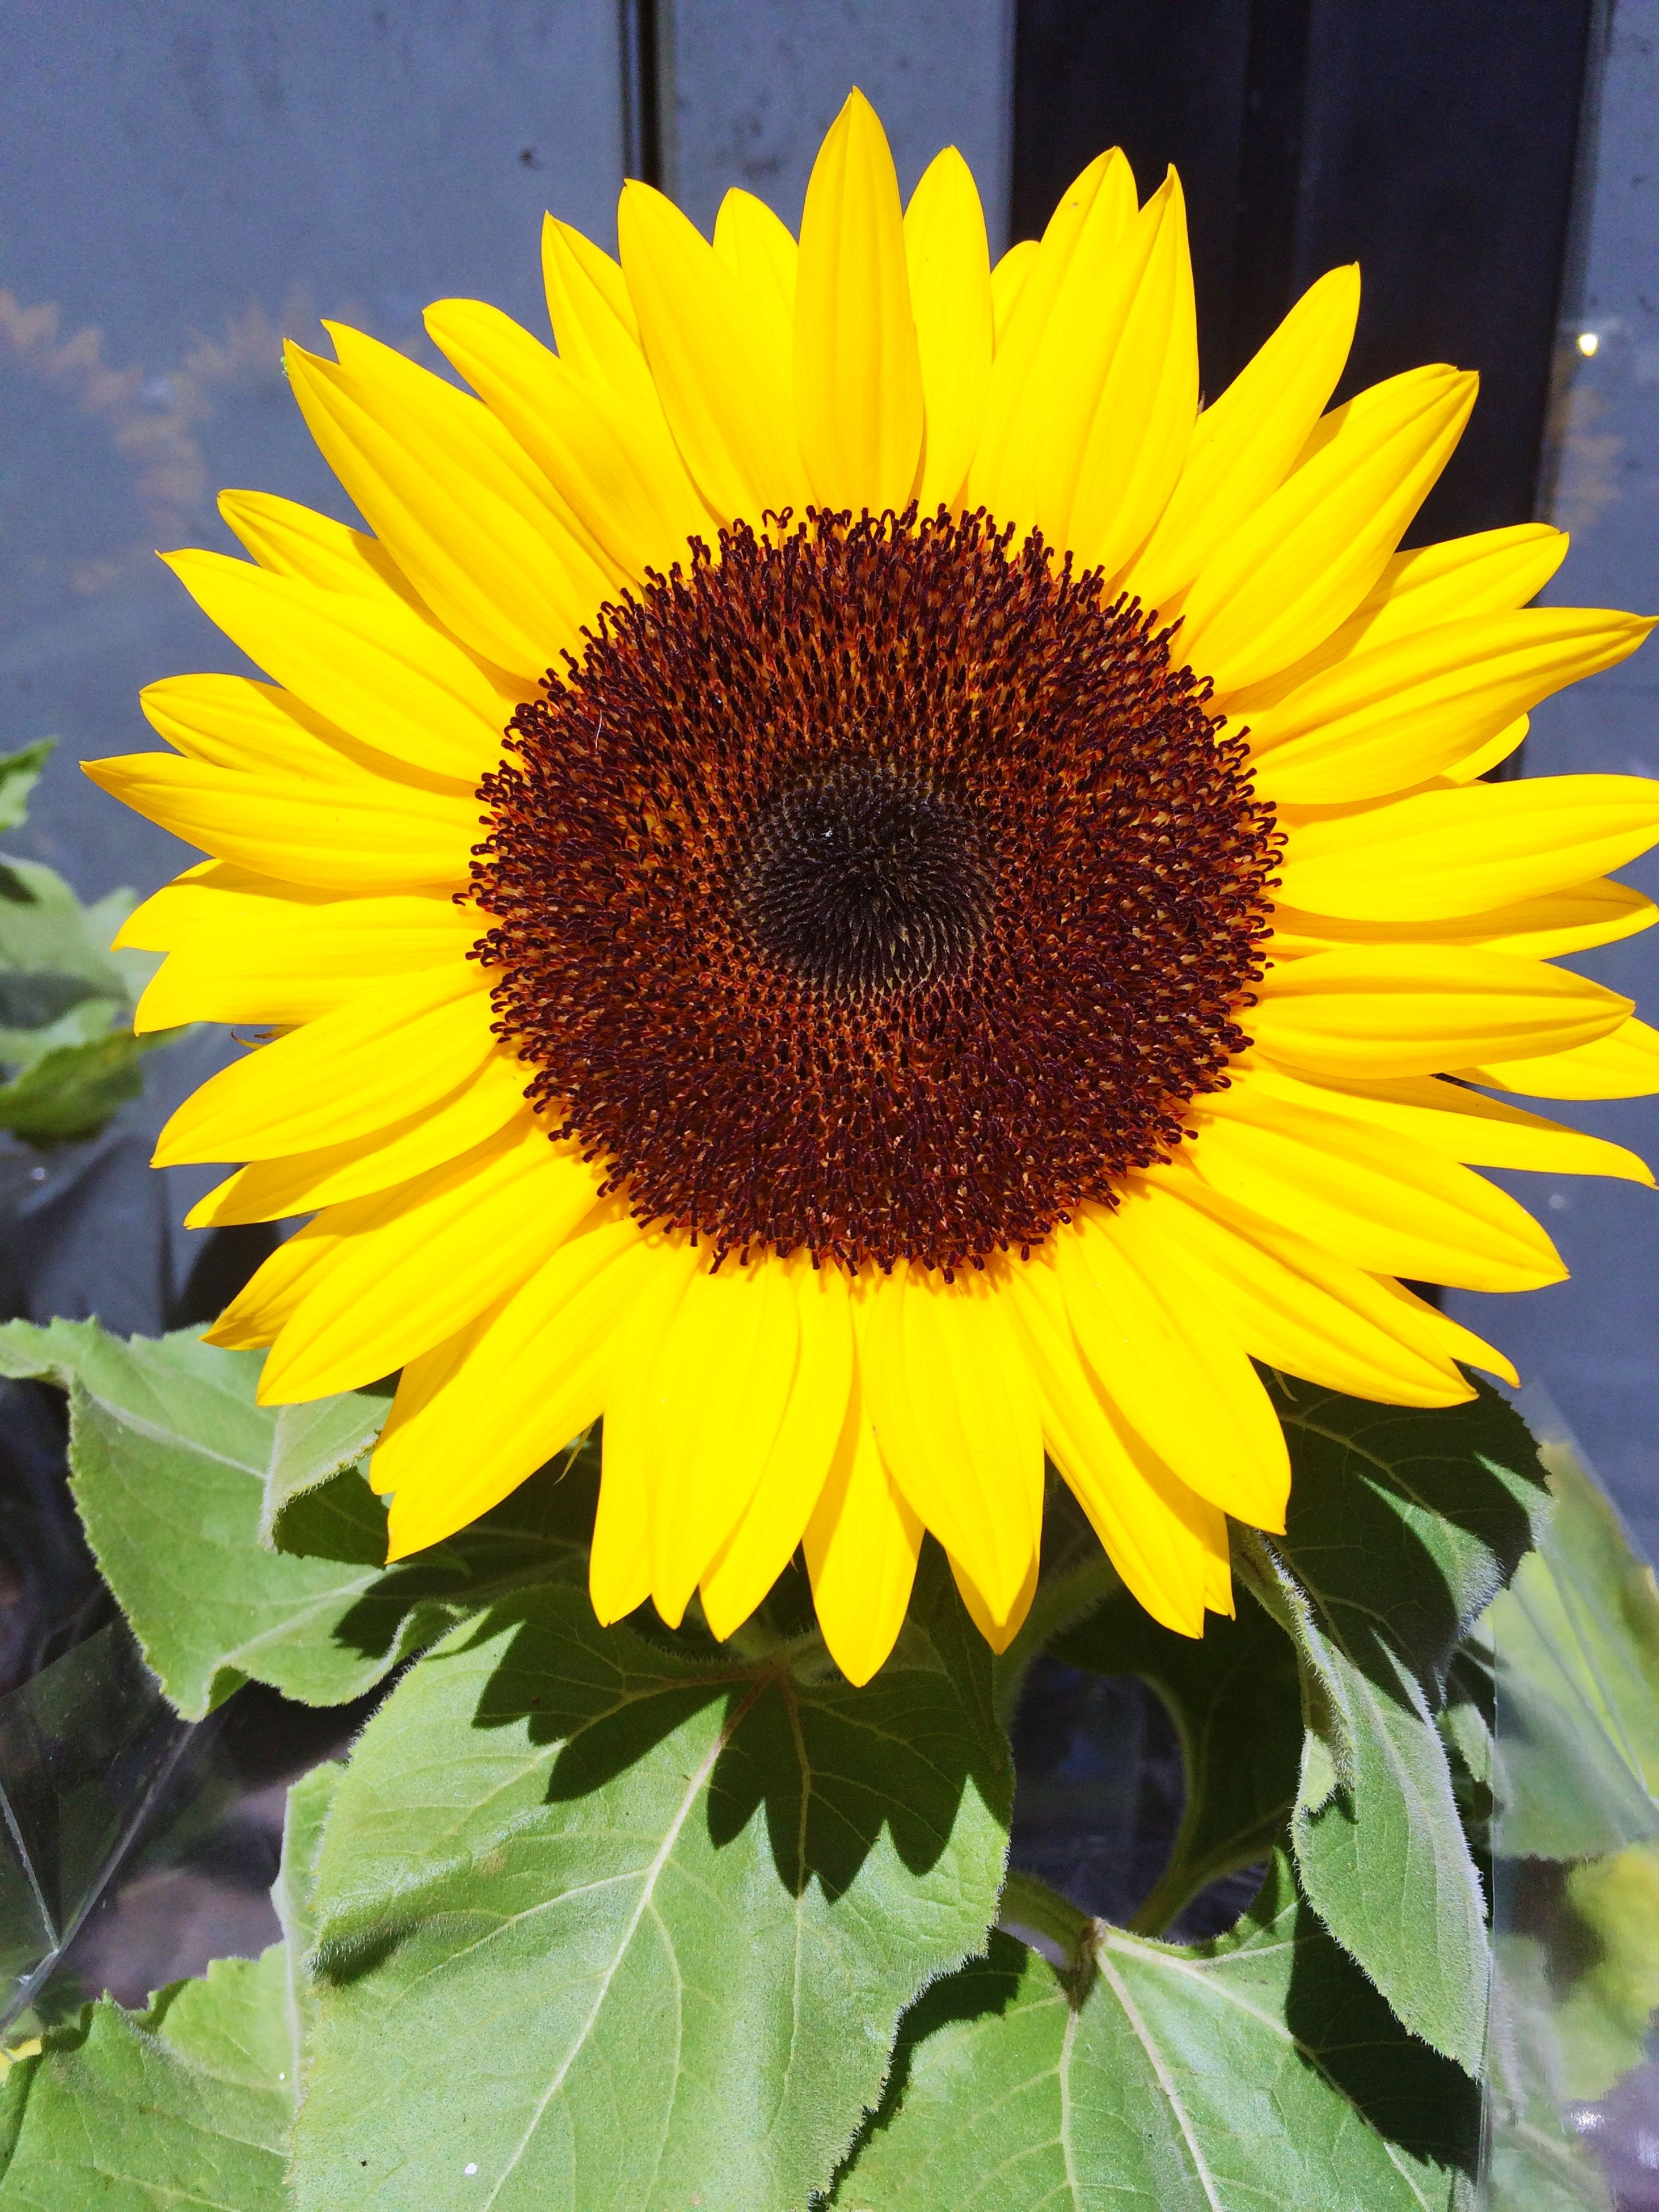 flower, yellow, sunflower, freshness, flower head, petal, fragility, growth, pollen, leaf, beauty in nature, plant, single flower, blooming, nature, close-up, in bloom, no people, day, outdoors